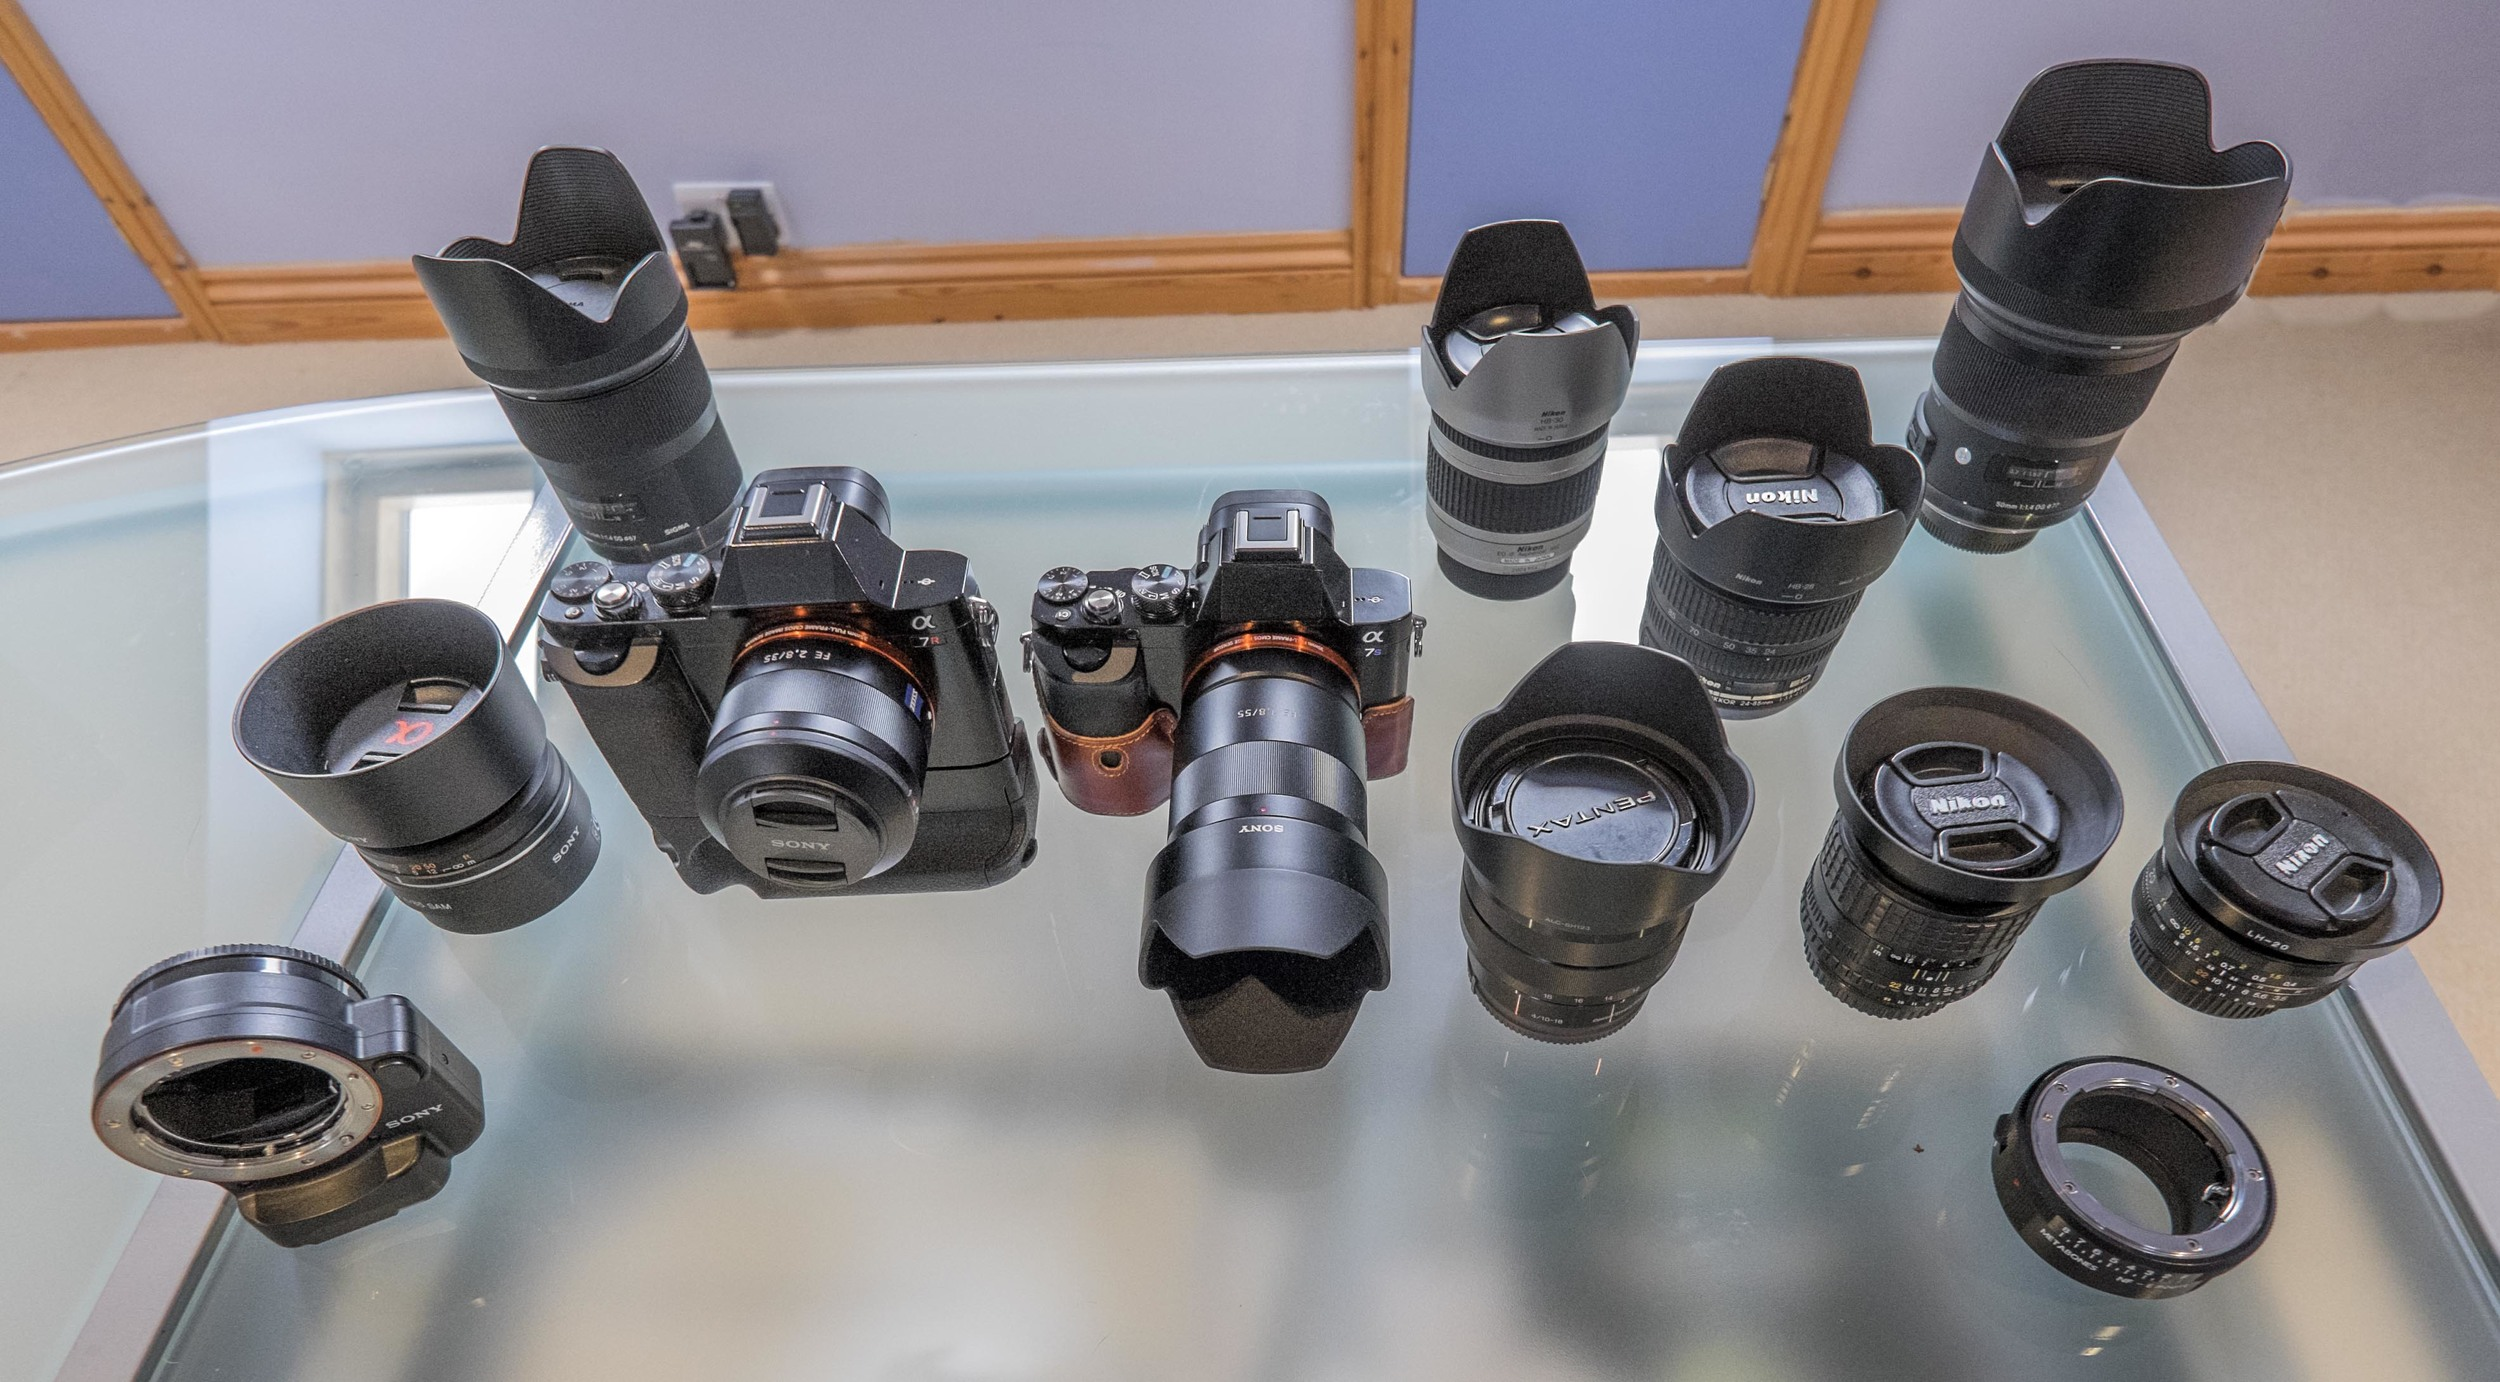 My current Sony FE system. Sony A7r and A7s, Sony FE 55mm F1.8 ZA Carl Zeiss Sonnar T* Lens, Sony FE 35mm f2.8 ZA Carl Zeiss Sonnar T* Lens, Sony VG-C1EM Battery Grip, Sony LA-EA4 adapter, Sony 85mm f/2.8 SAM lens, Sigma 35mm f/1.4 ART lens, Sony E10-18mm f4 OSS Lens, Sigma 50mm f/1.4 ART lens, Nikon 28-200mm f/3.5-5.6 G Zoom Lens, Nikon 24-85mm f/3.5-4.5AF-S G lens , Voigtlander 20mm f3.5 Color Skopar SL II Lens - Nikon Fit, Nikon Series E 100mm f/2.8. Metabones Nikon F > Sony e-mount adapter.